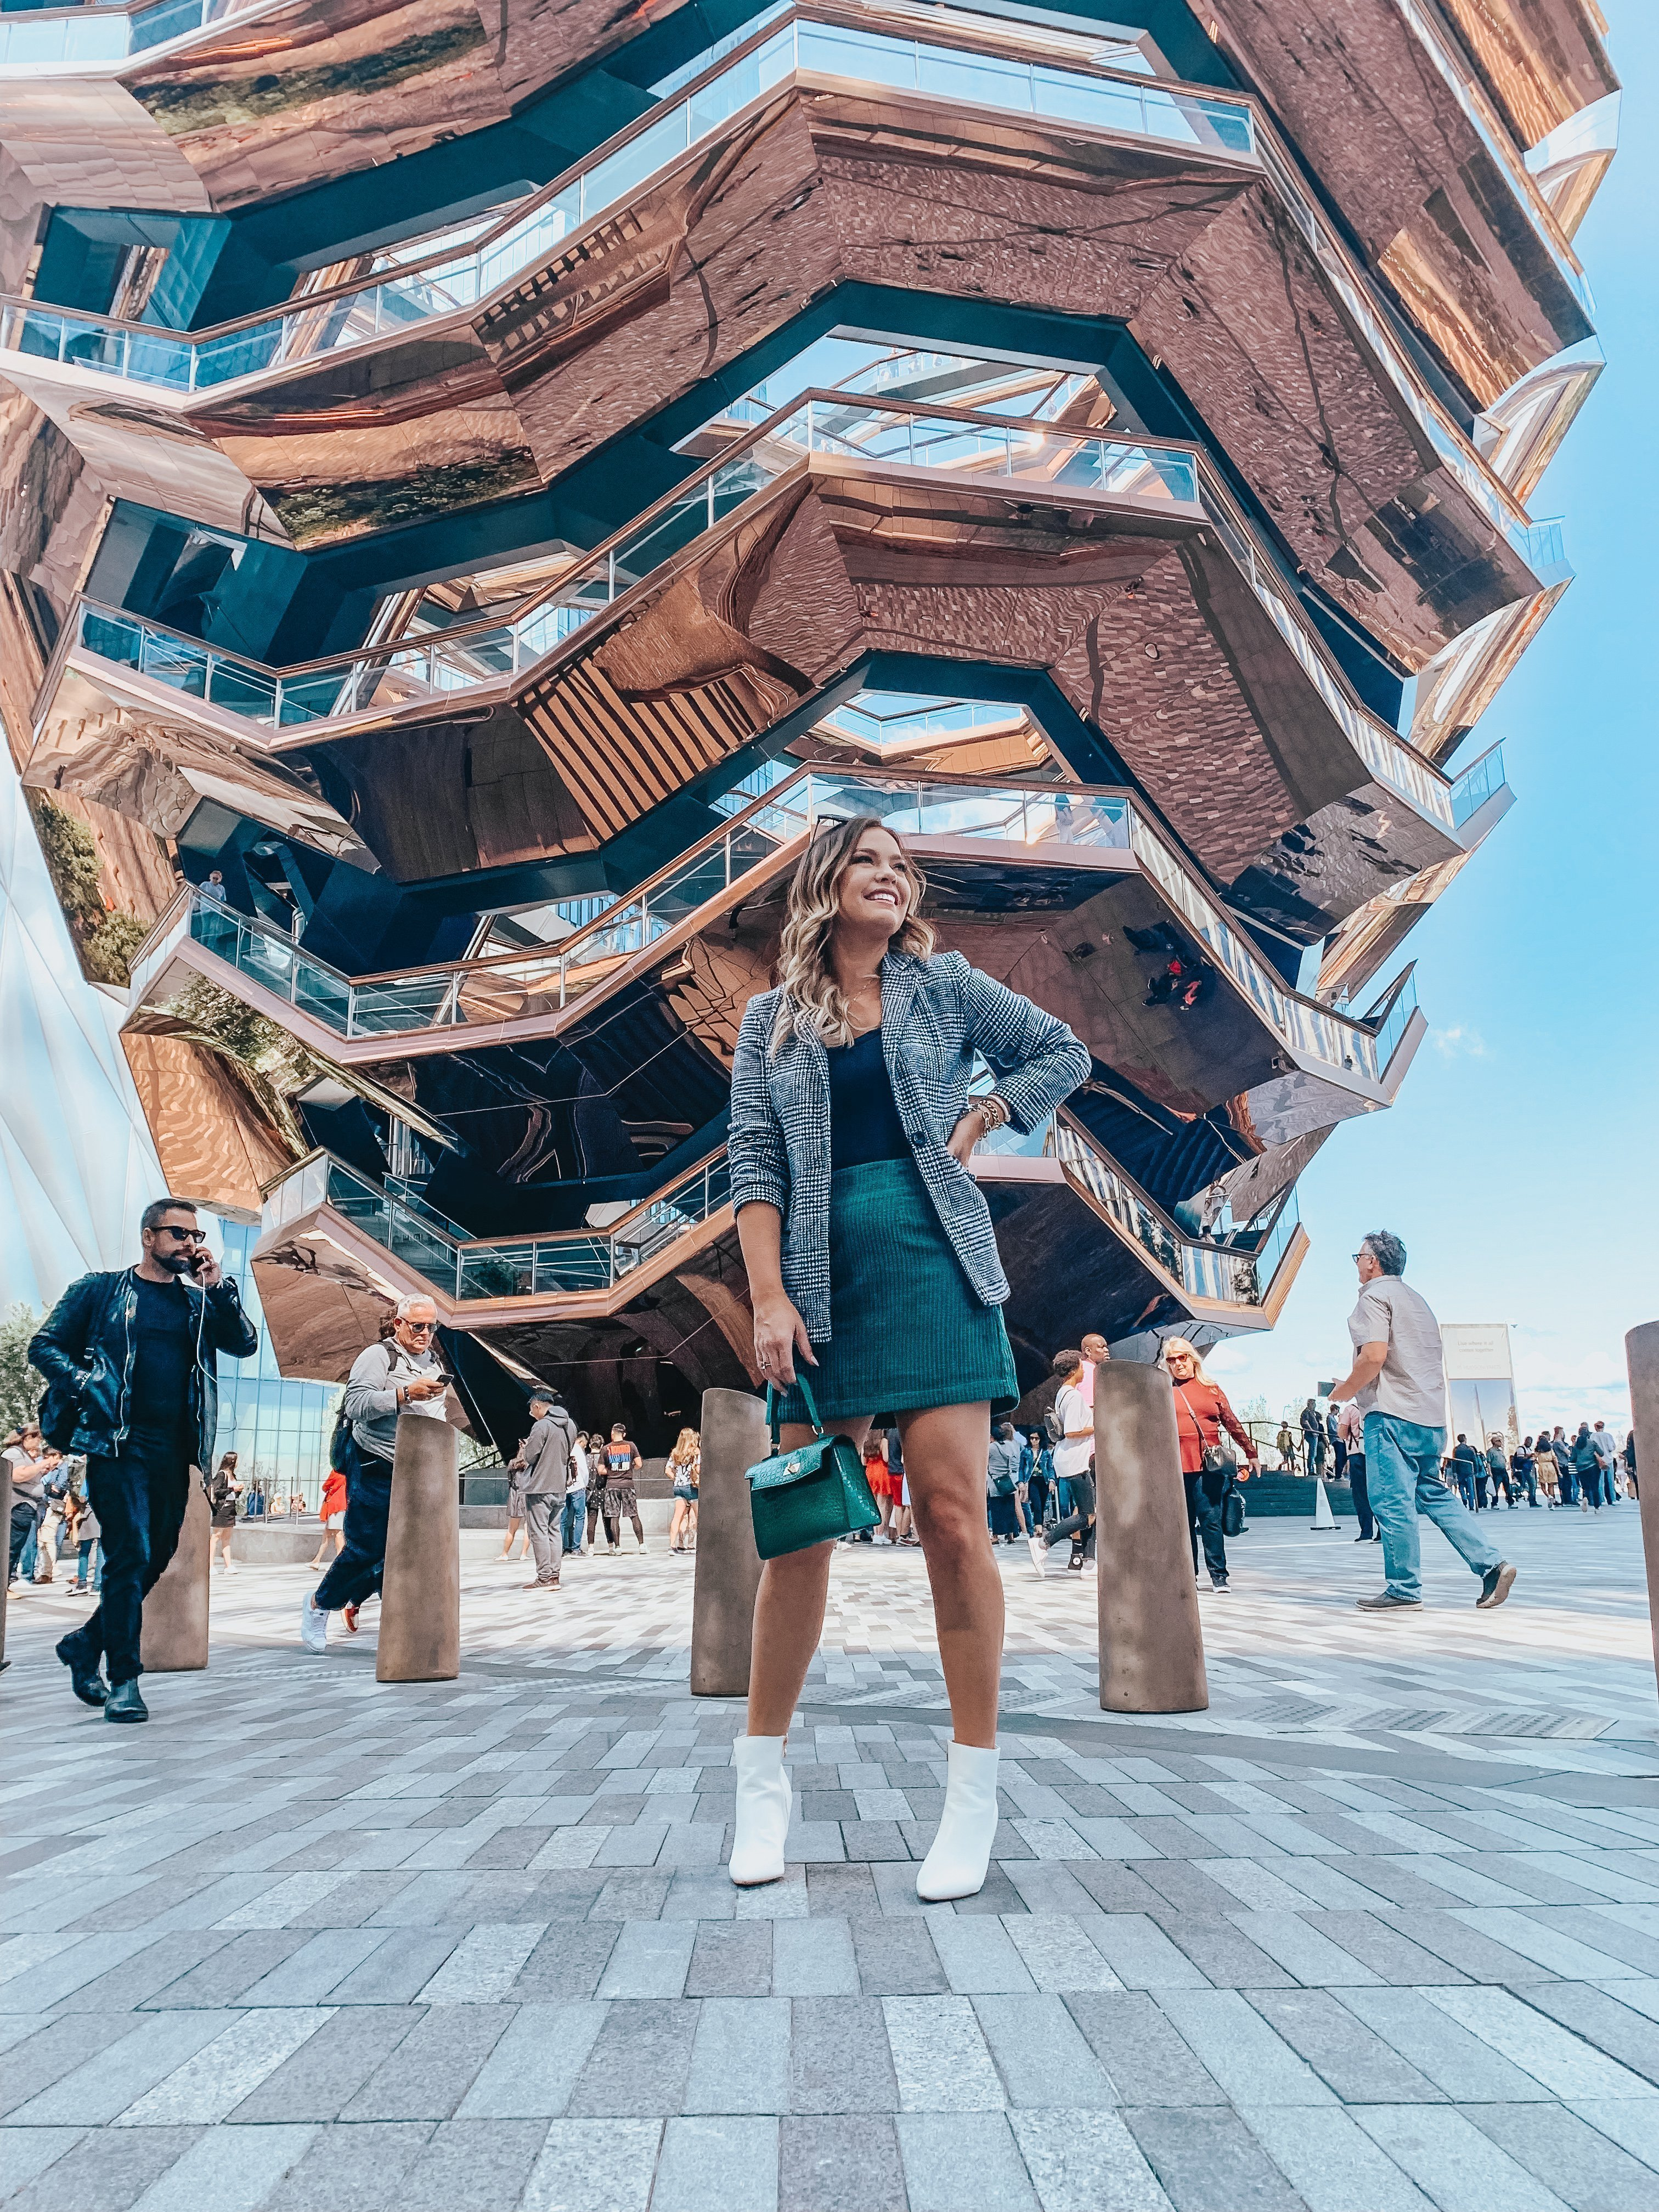 The Vessel NYC at Hudson Yards